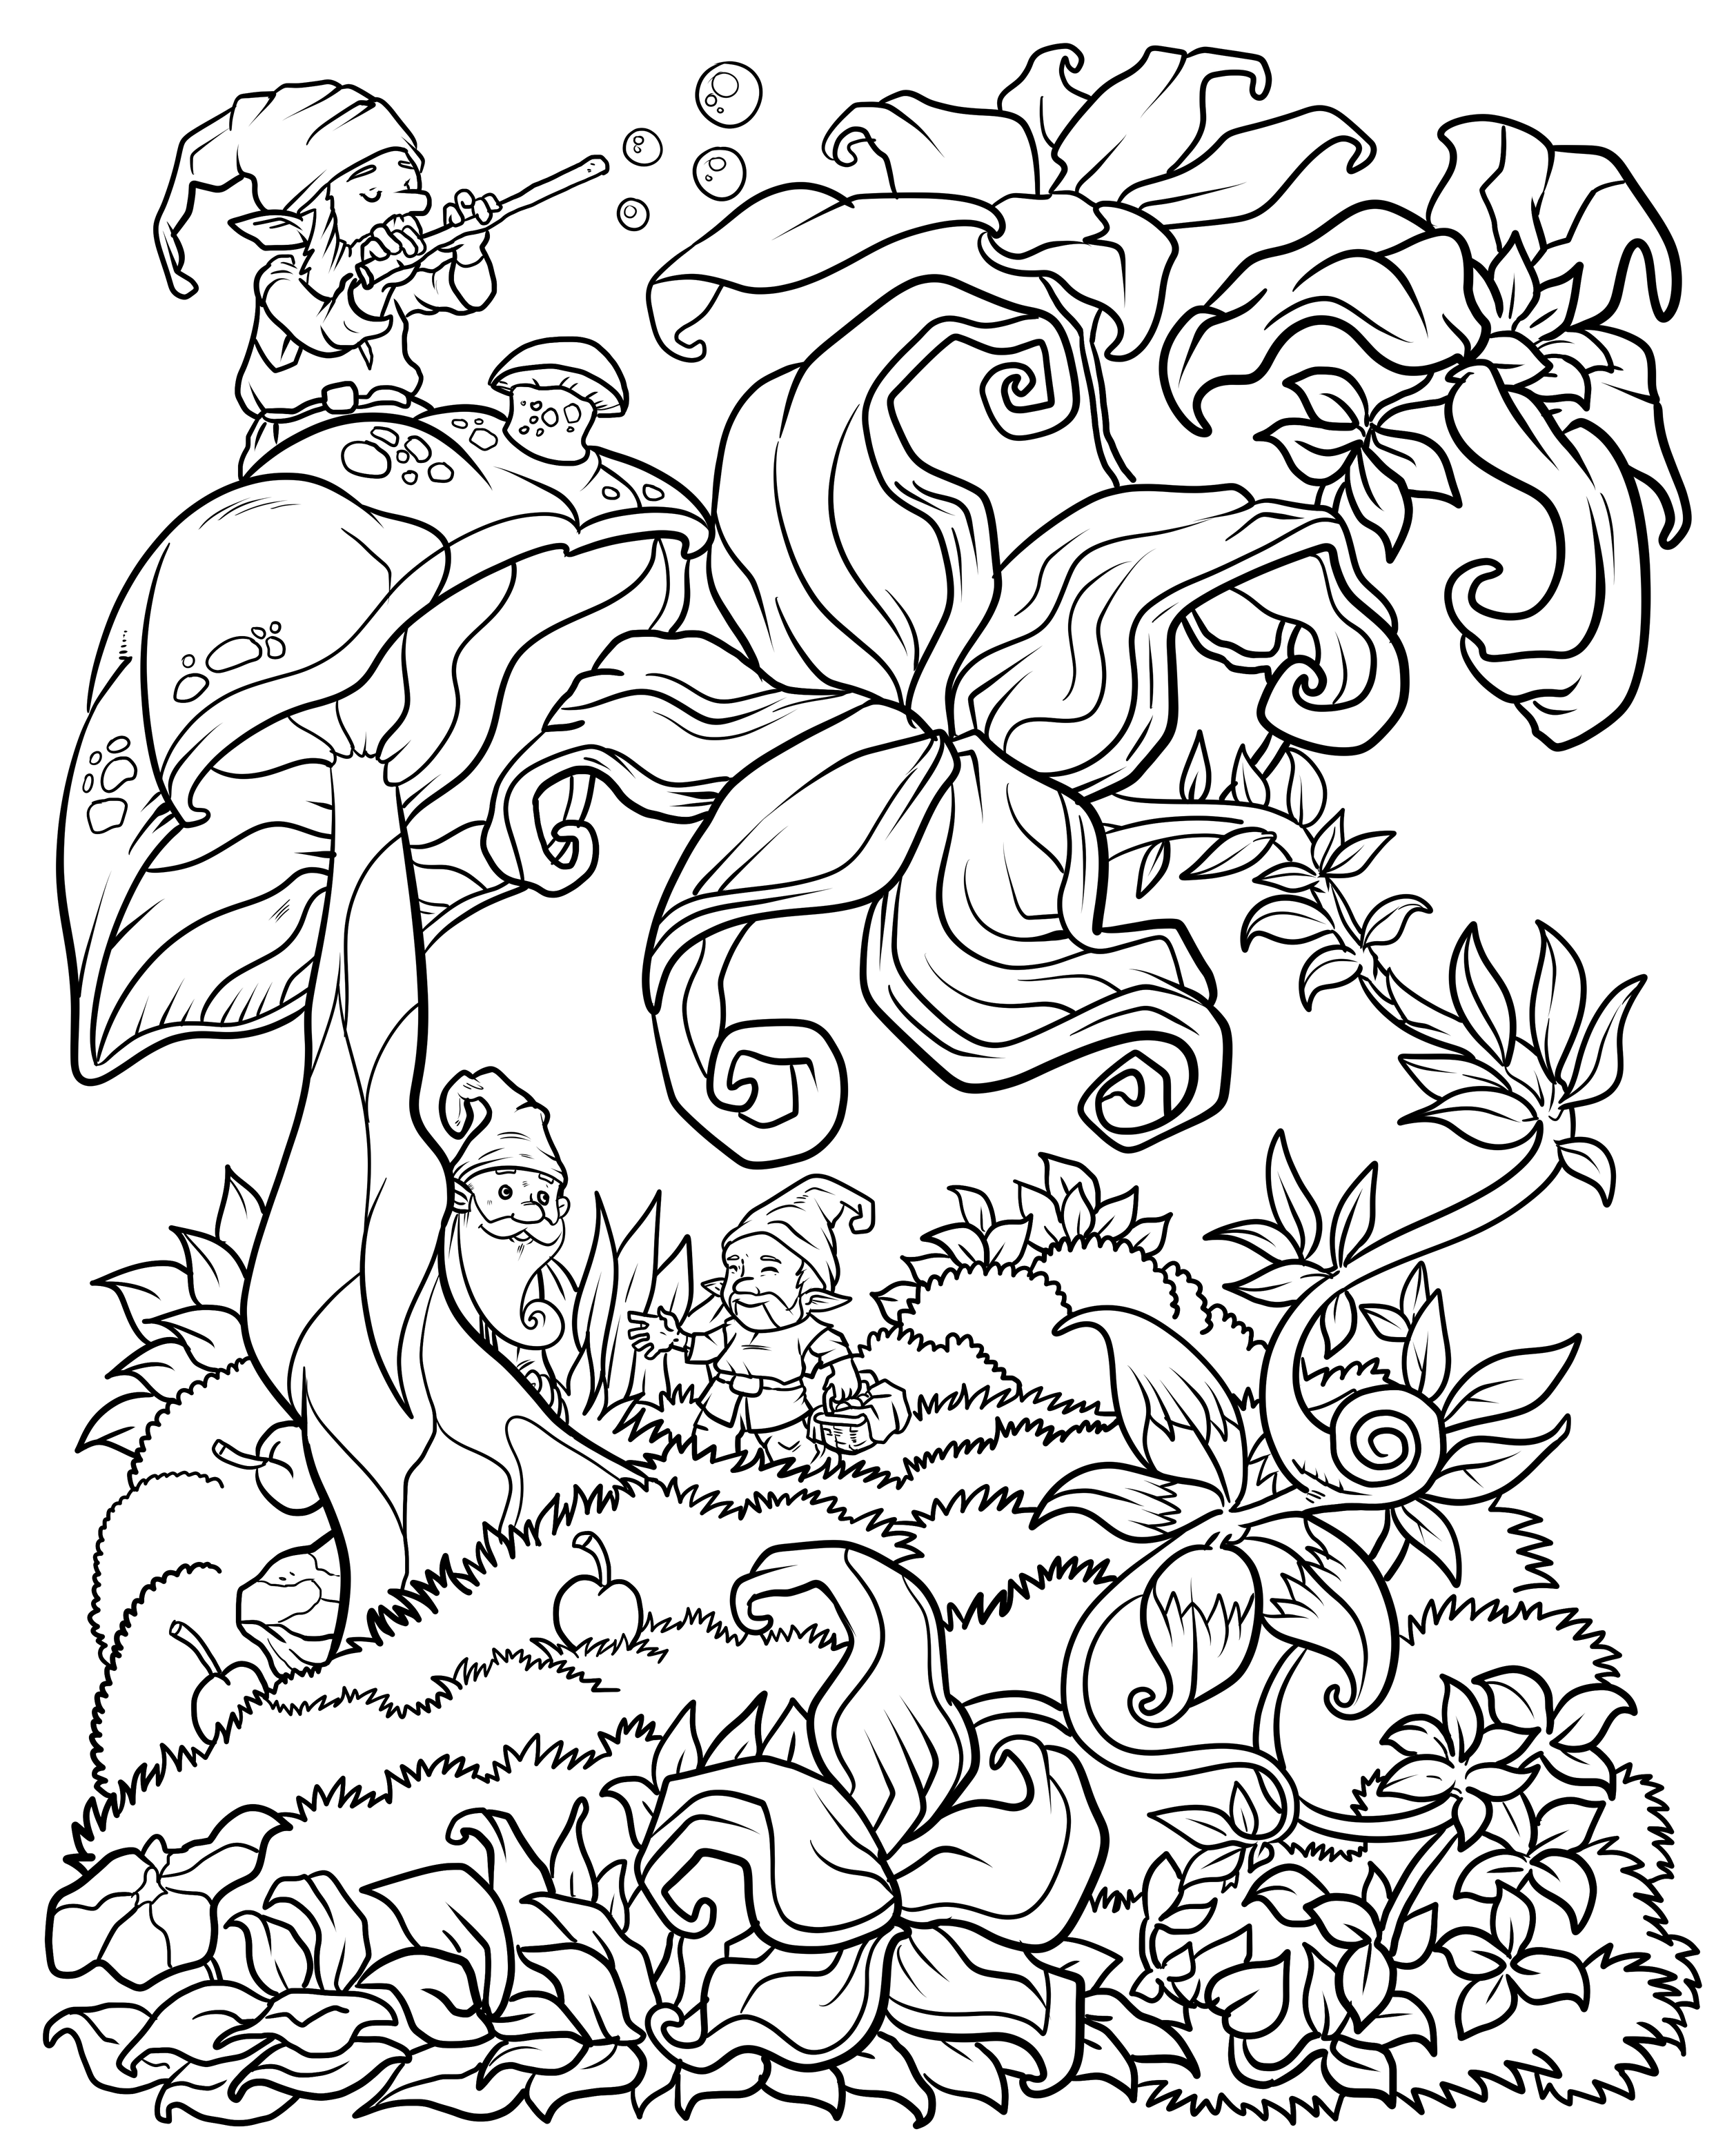 coloring adults printable floral coloring pages for adults best coloring pages for coloring printable adults